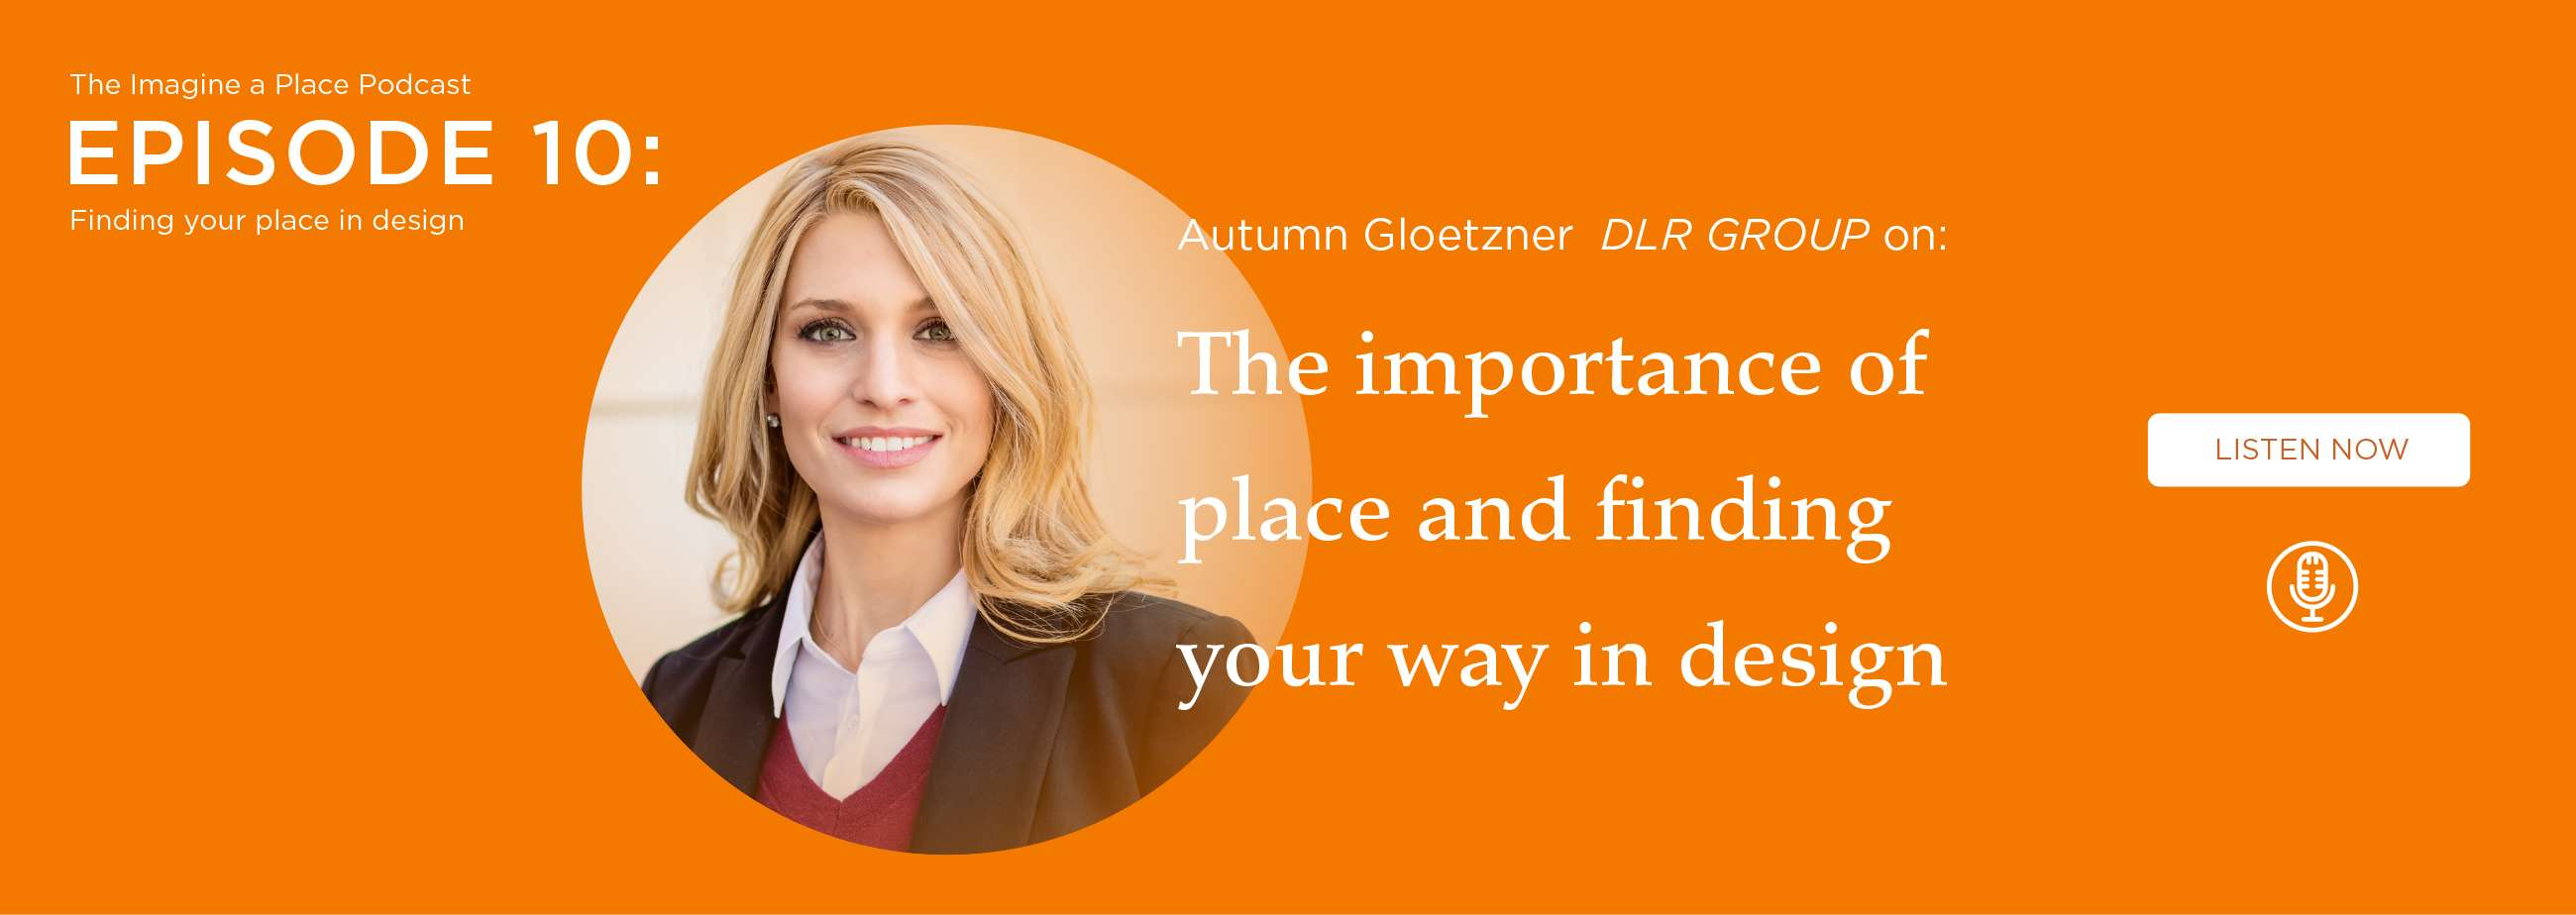 Autumn Gloetzner (DLR Group): Finding your place in design. - Ep. 10